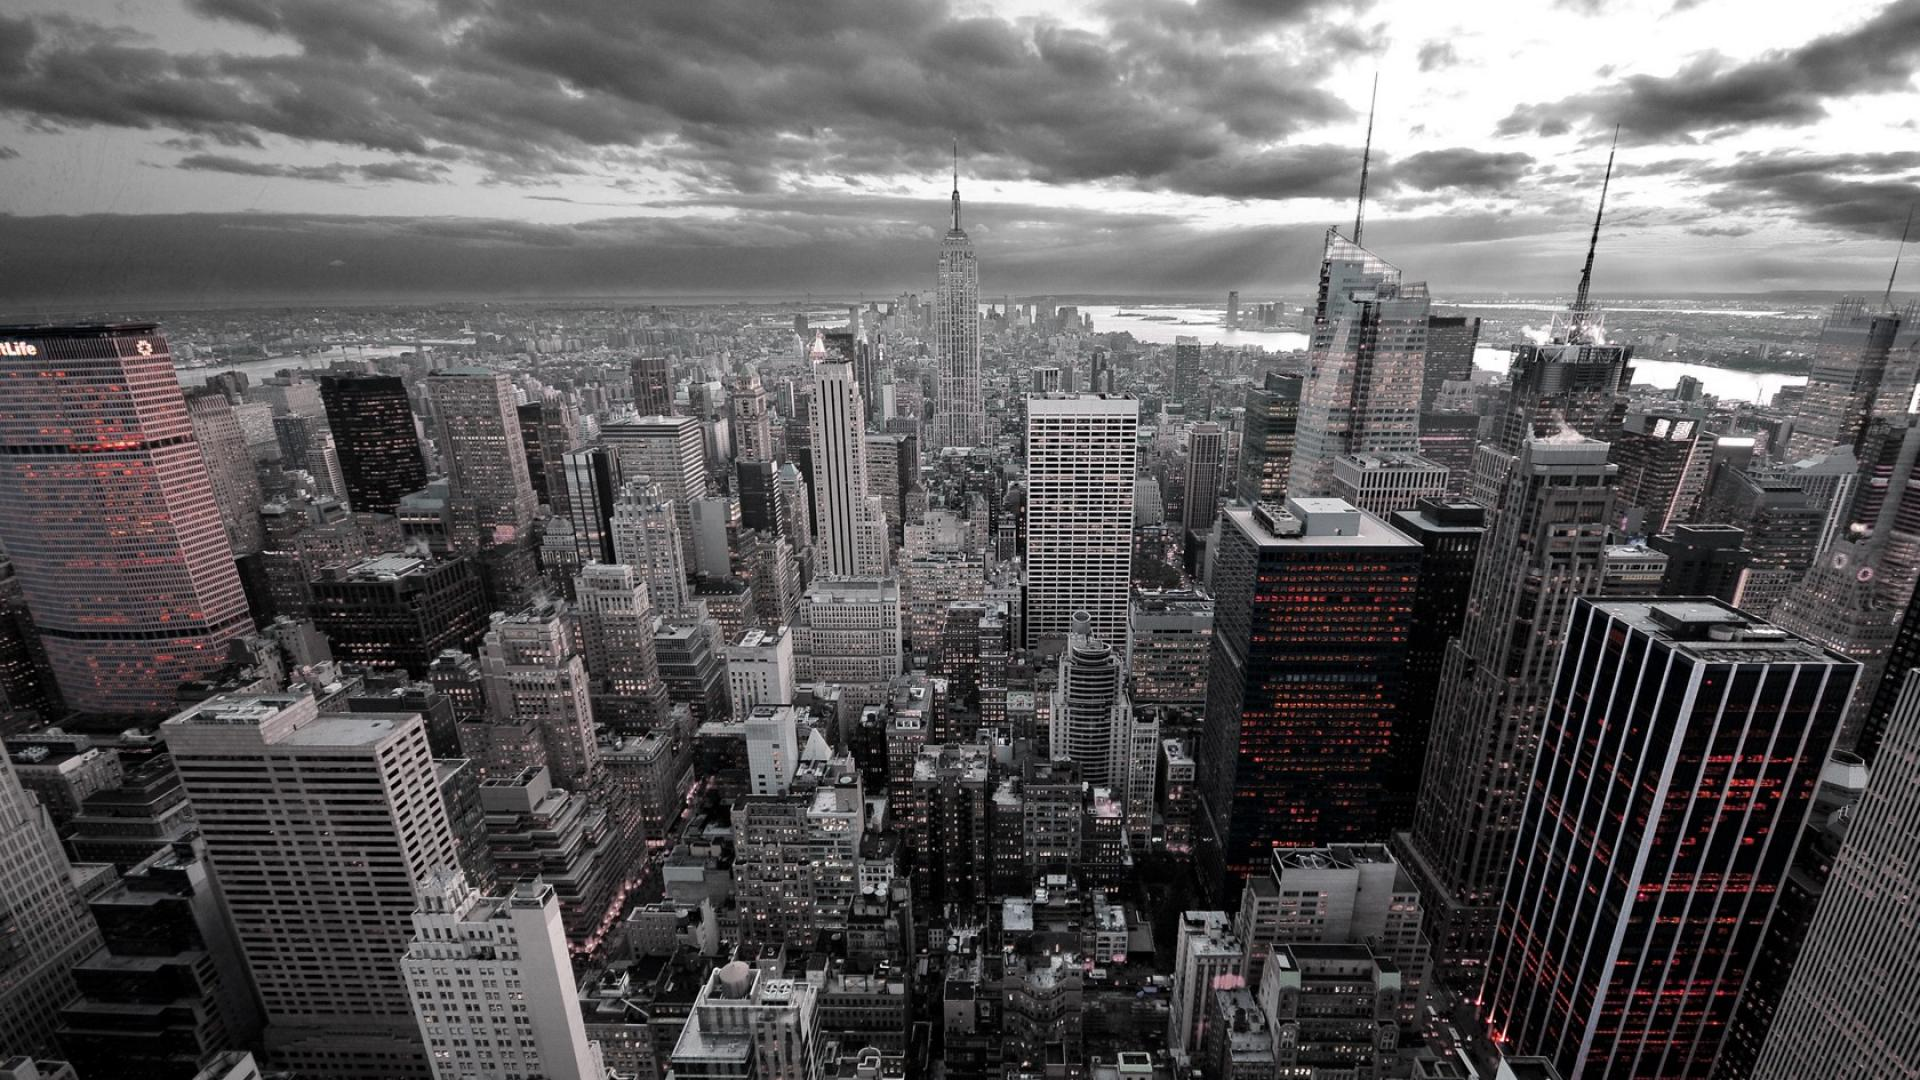 Free Download New York City Black And White Hd Wallpaper Of